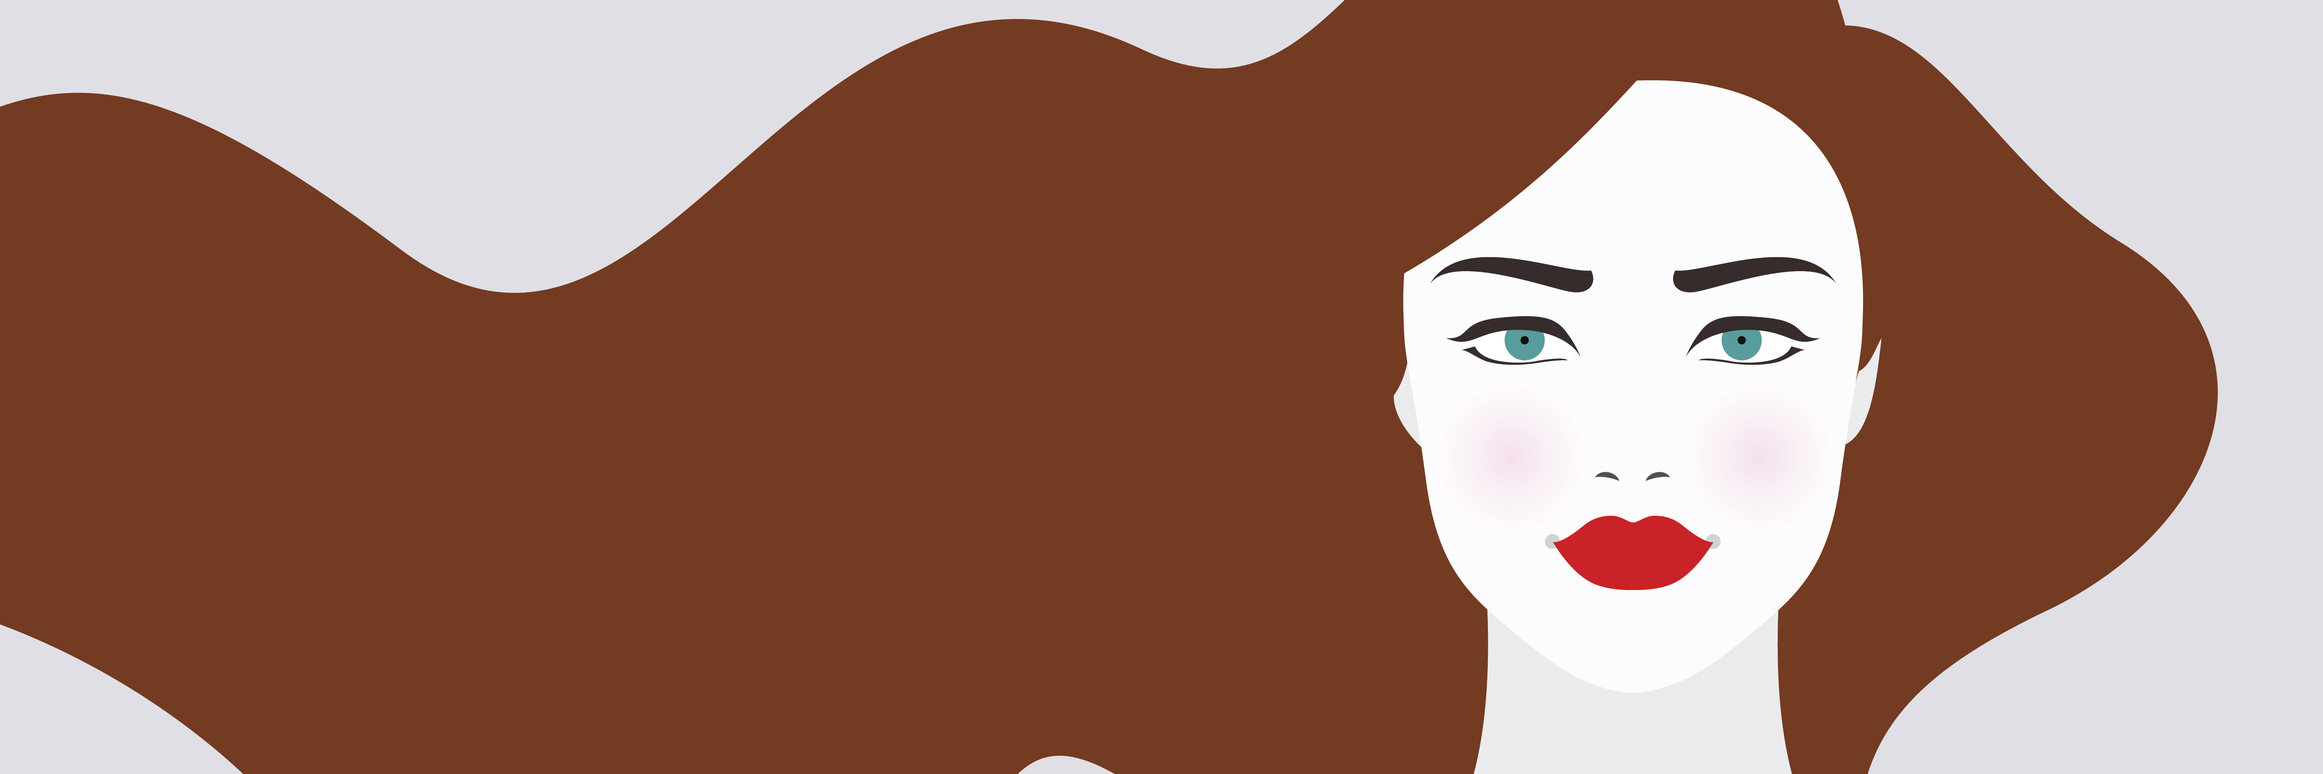 Vector illustration of woman with long brown hair